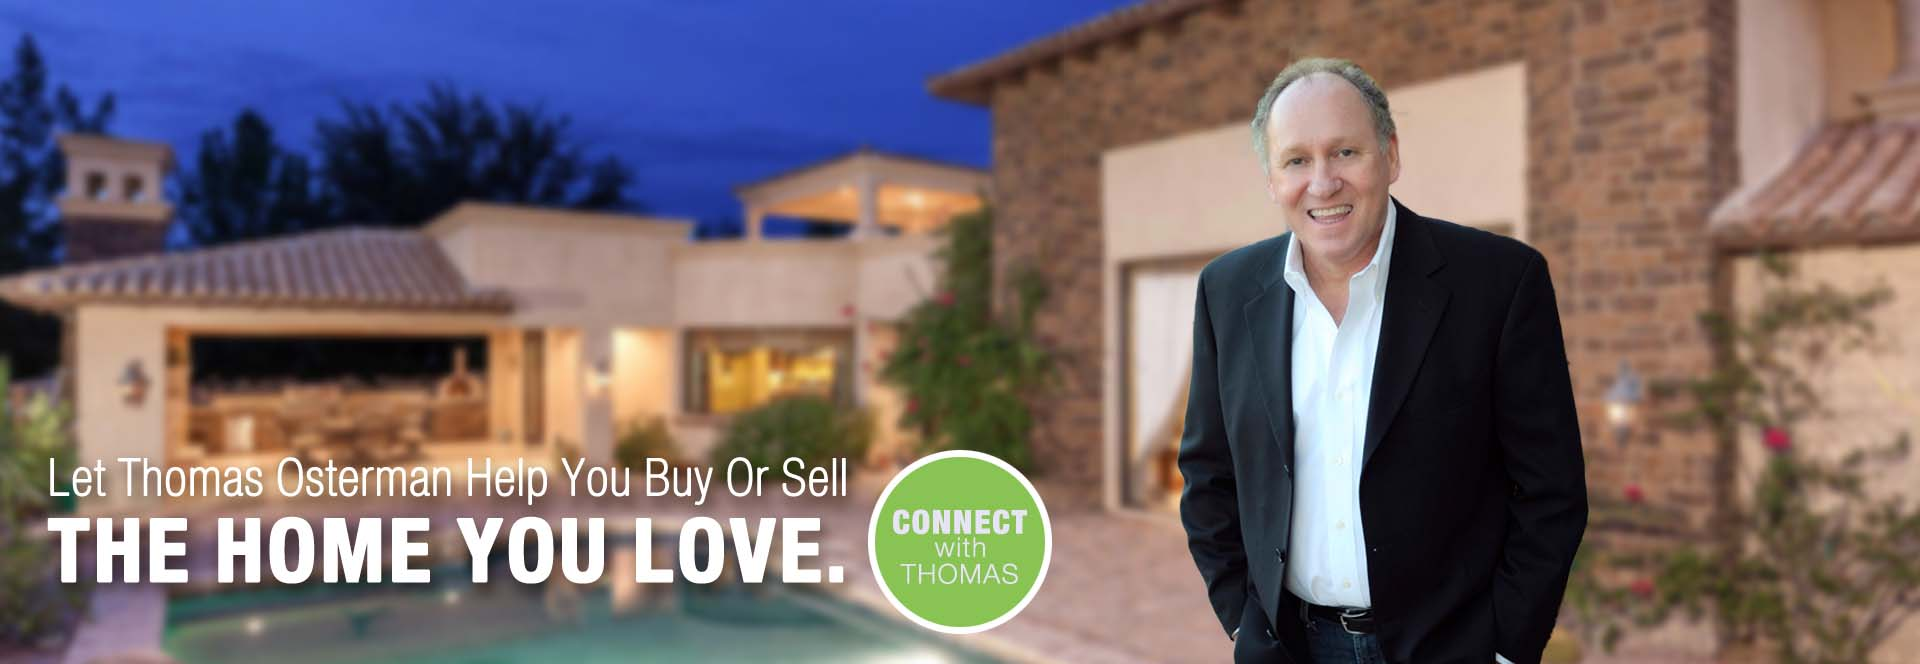 Thomas-Osterman-Real-Estate-Agent-Realty-Executives-Arizona